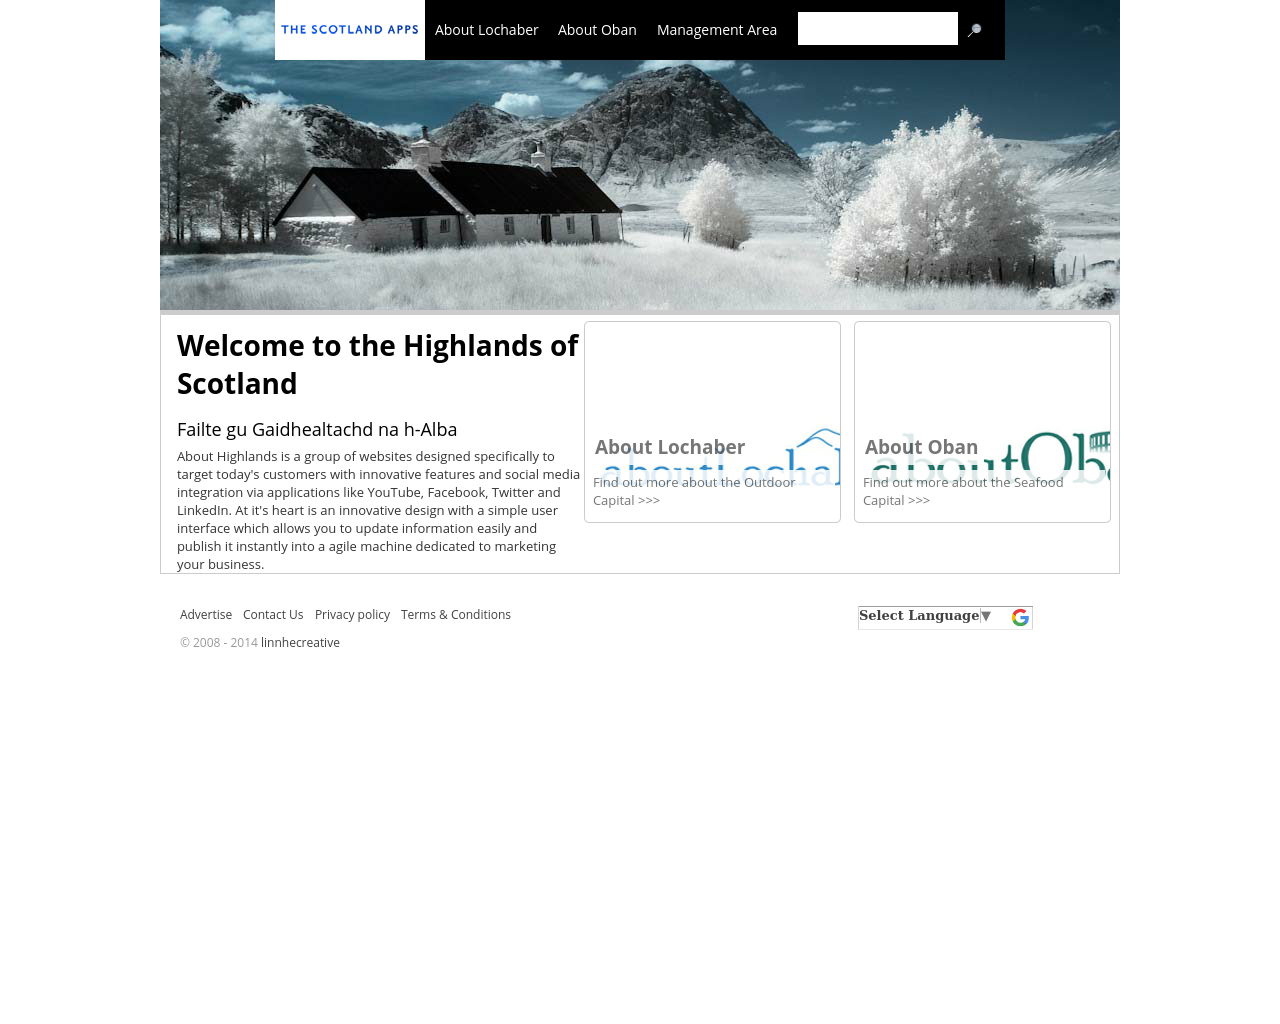 About-Highlands-Advertising-Reviews-Pricing